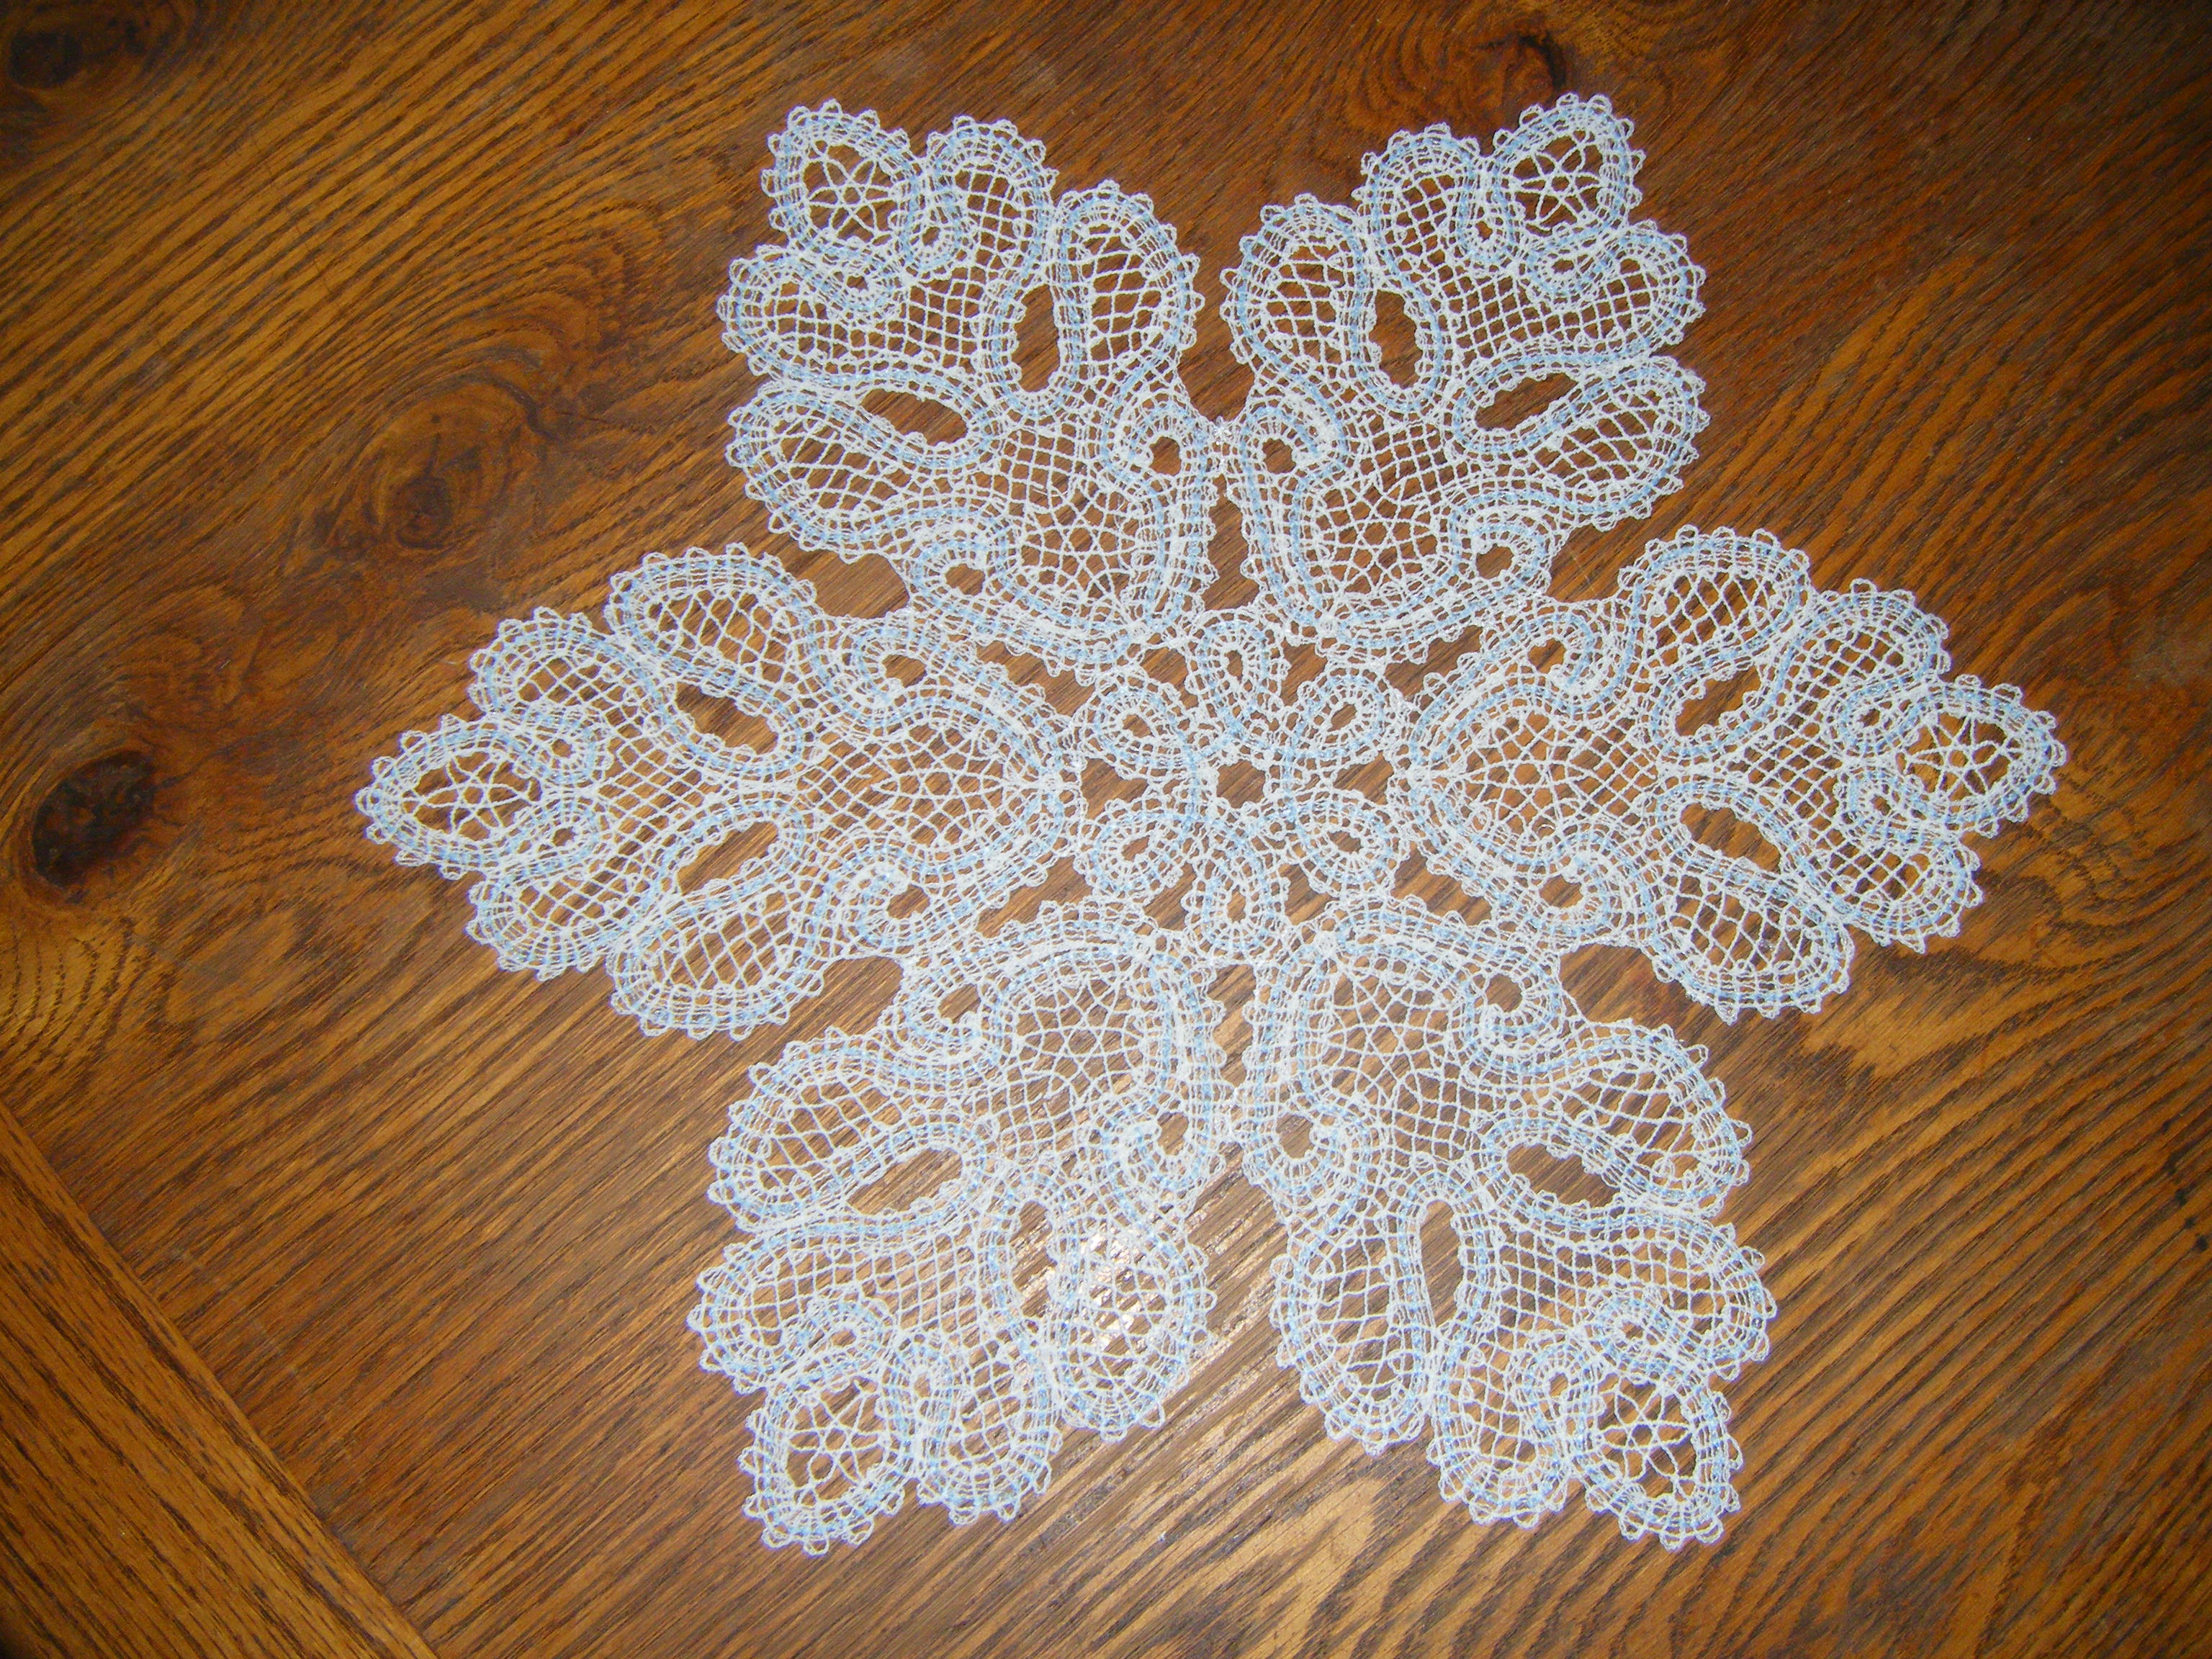 How to crochet snowflake patterns 33 amazing diy patterns for free crochet snowflake doily patterns bankloansurffo Images